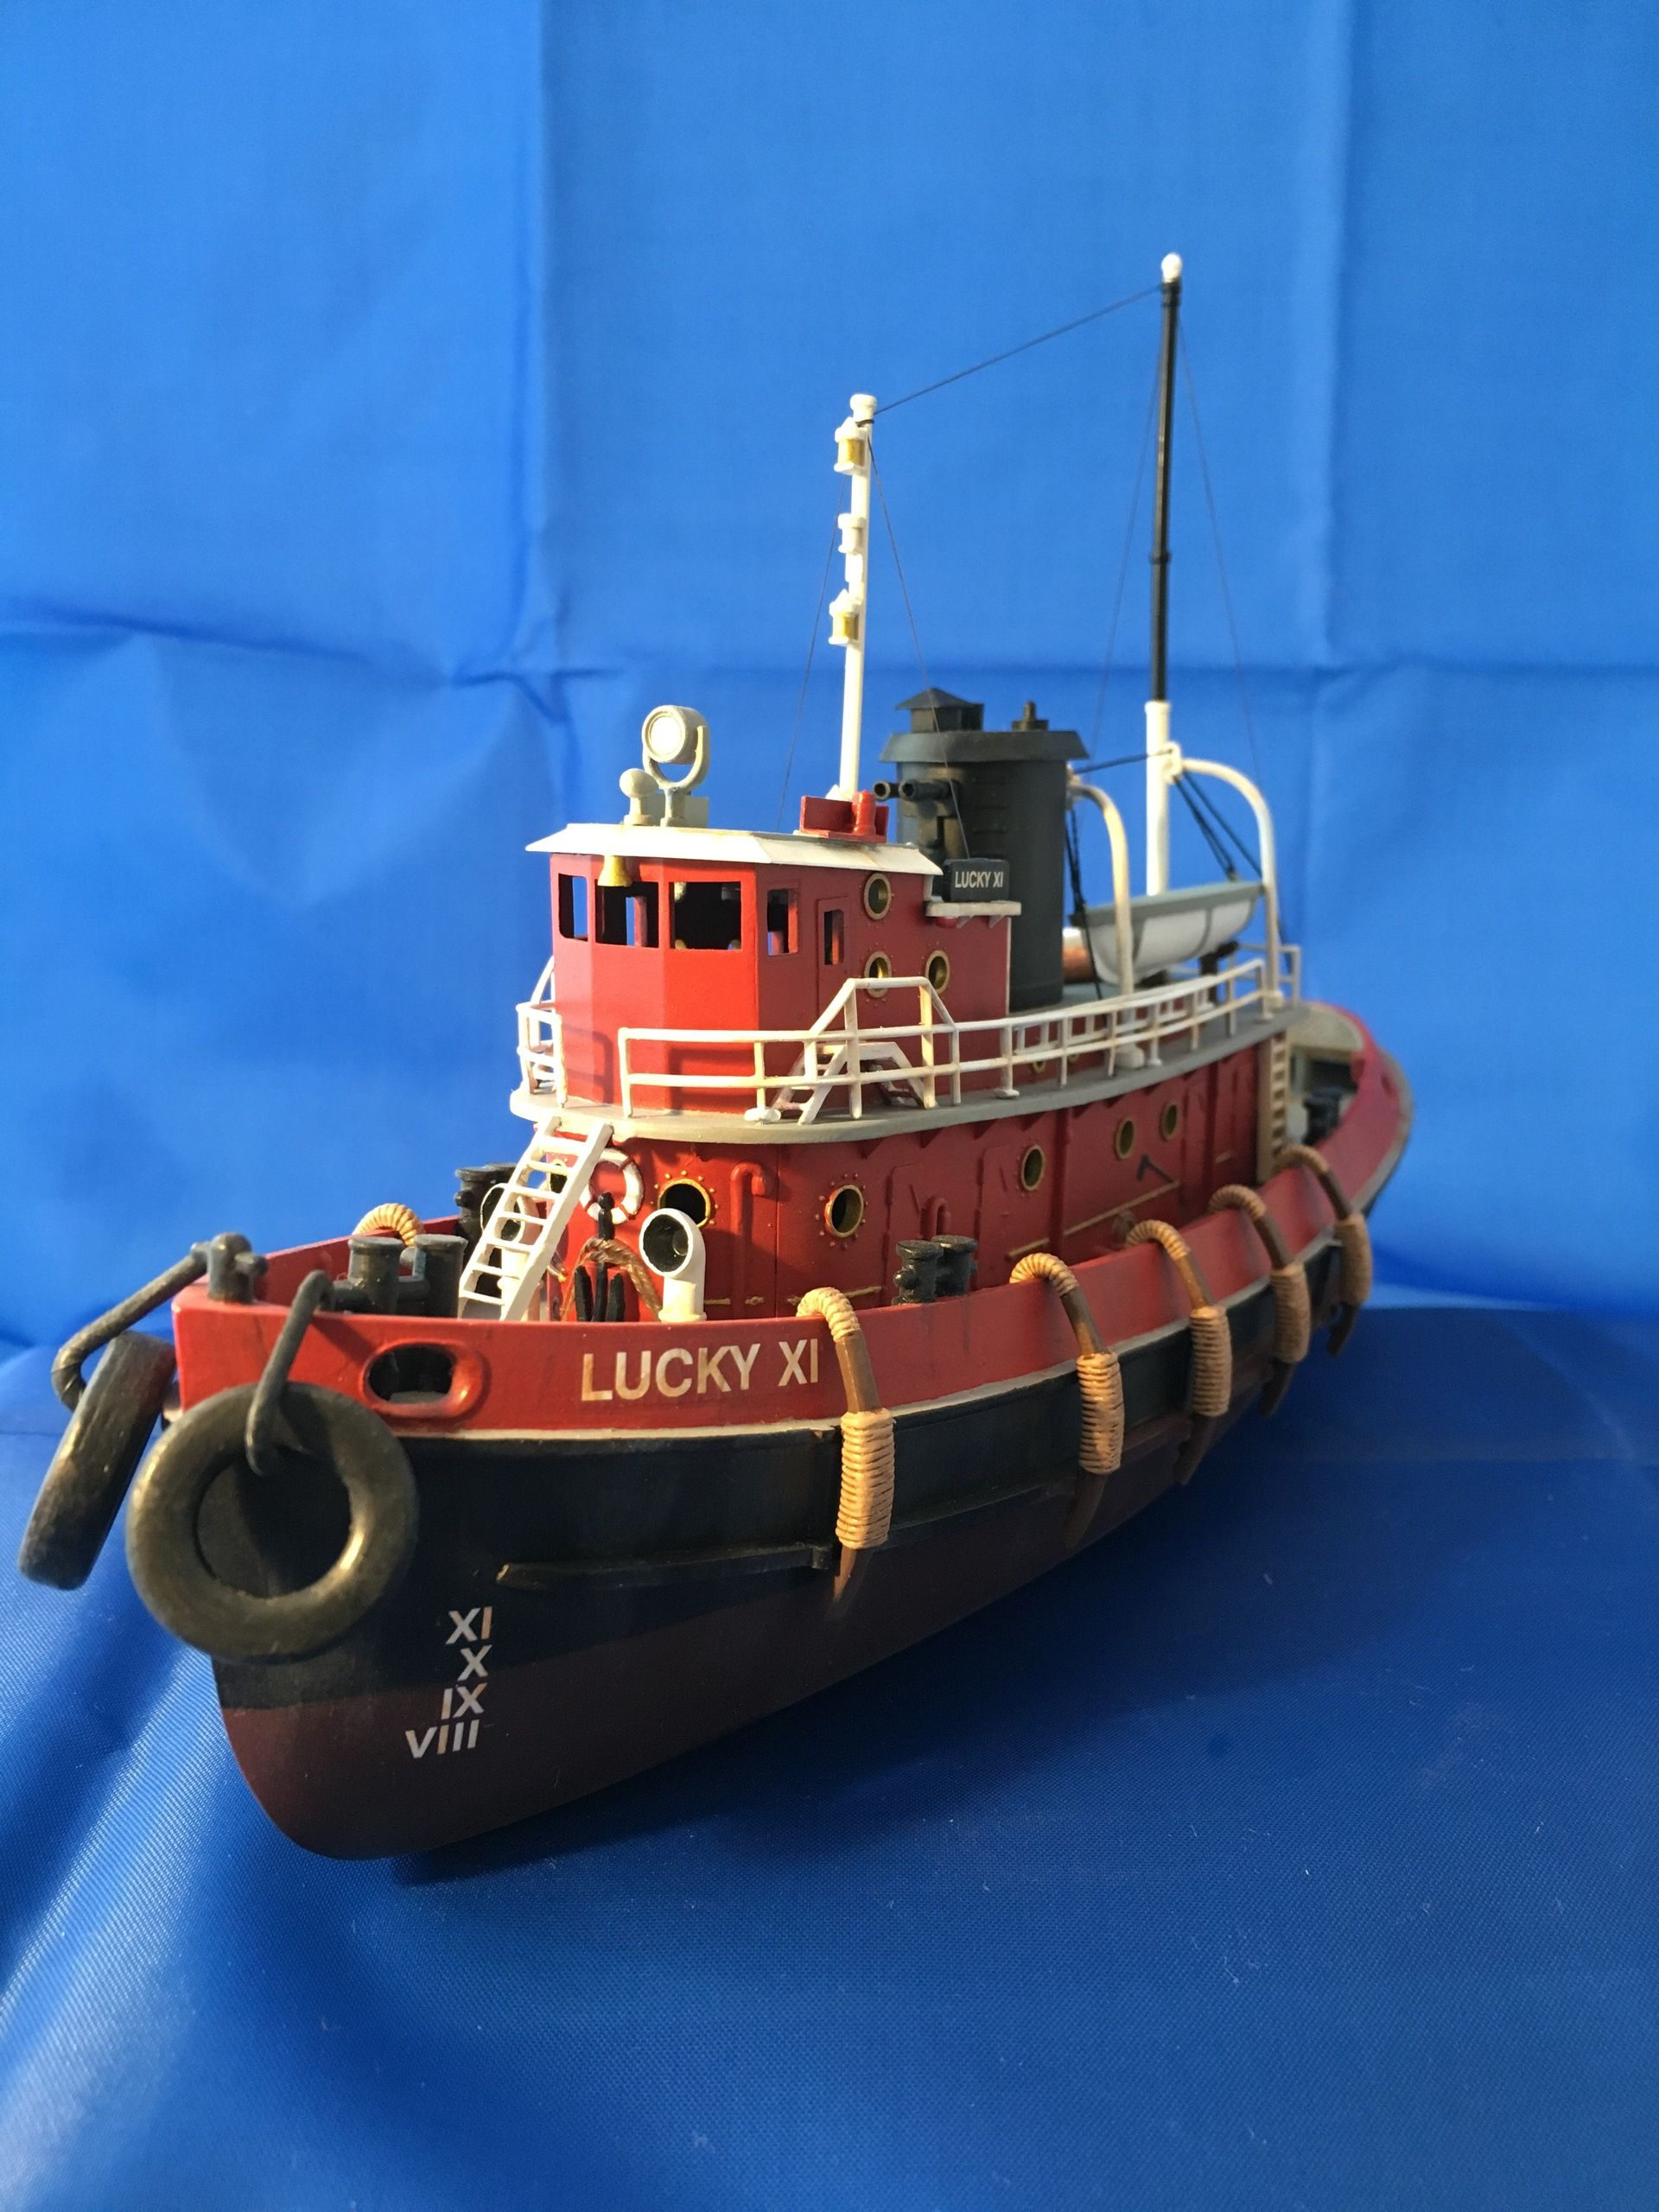 Harbour Tug Boat Lucky Xi 1 108 Revell 2016